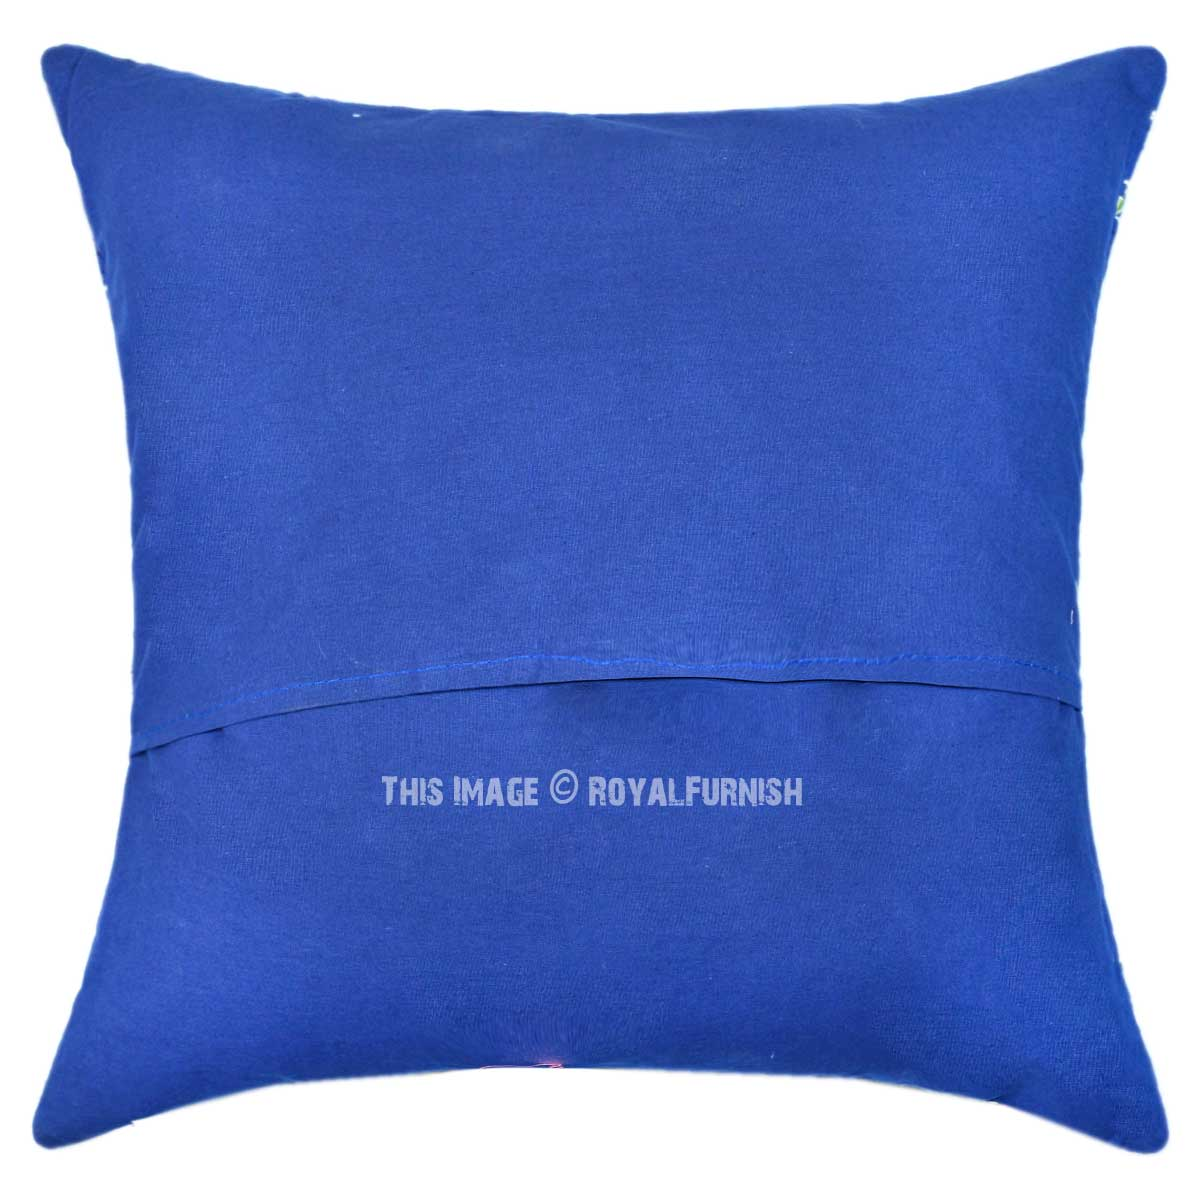 Blue Bird Throw Pillows : 16